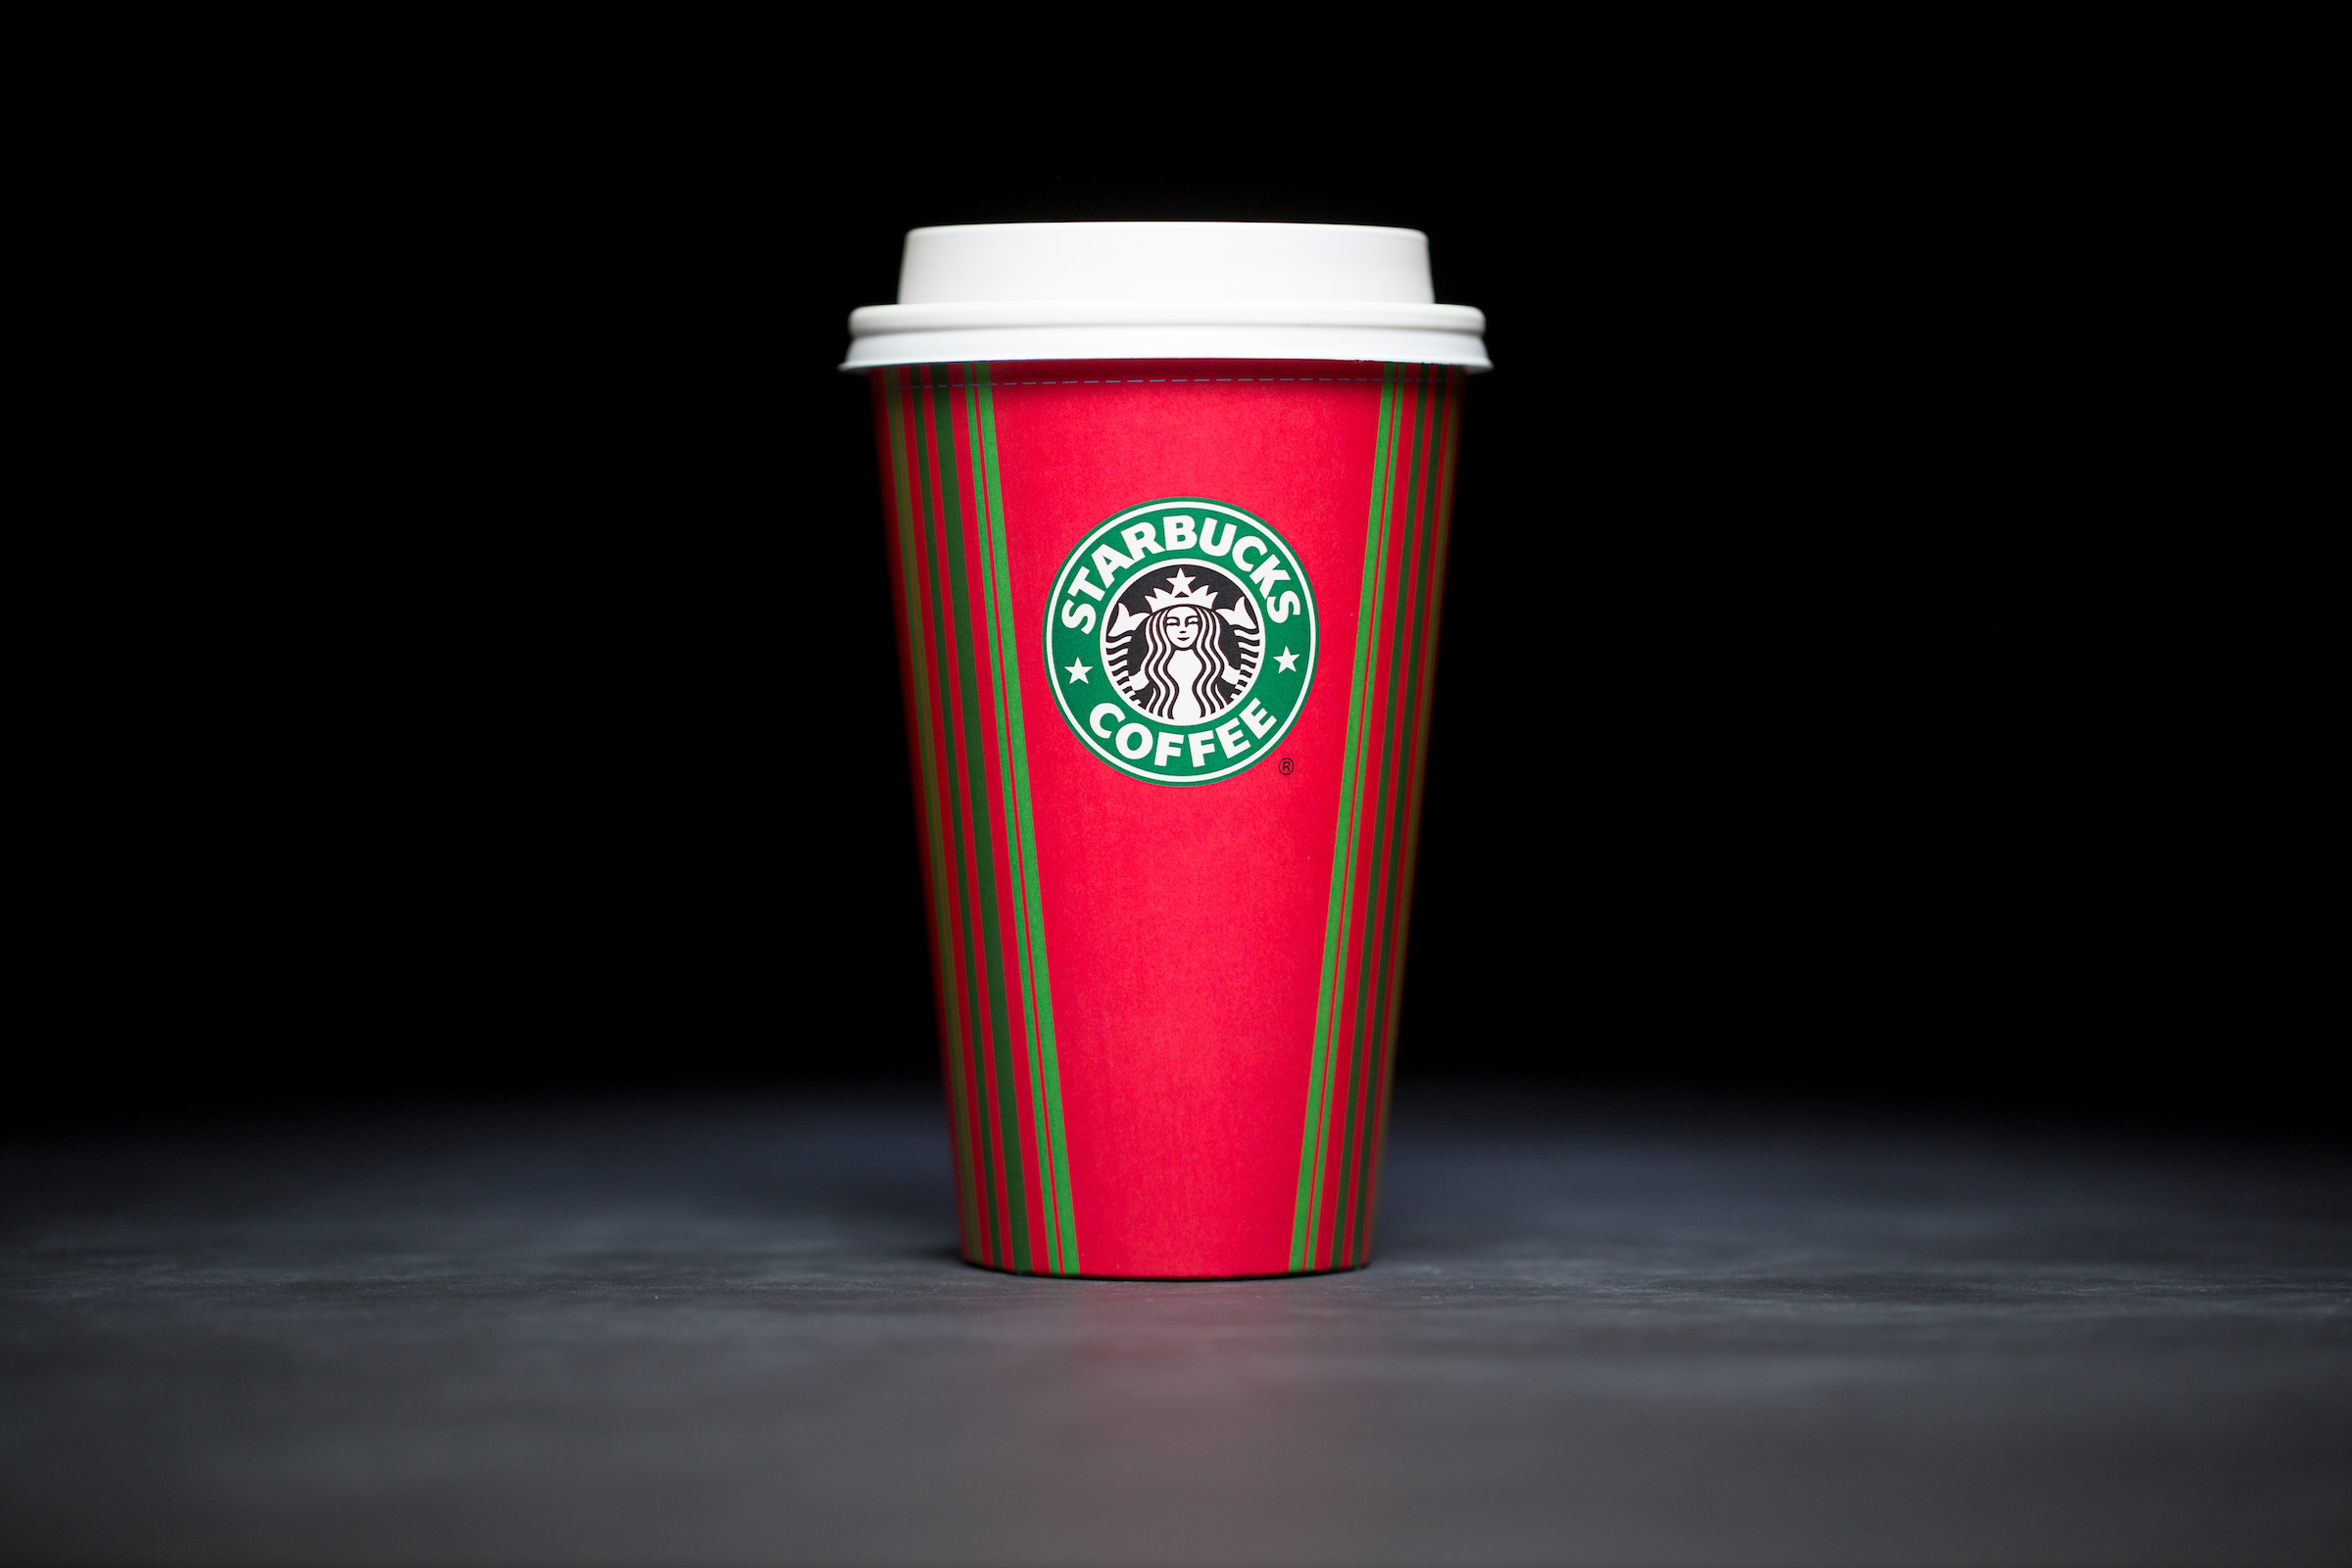 2001: For 20 years, Starbucks have released a range of holiday cup designs, most of them based around their world famous red cup. It's not easy to find the very first Starbucks holiday cups, which made their debut in stores in 1997. Few were saved, and electronic design files were lost in an earthquake in 2001. Even an Internet search is unyielding, with the cups having made their arrival long before the first selfie. But, we have them here! Click on for a photos of all 20 holidays cup designs. (Image: Joshua Trujillo/Cover Images)